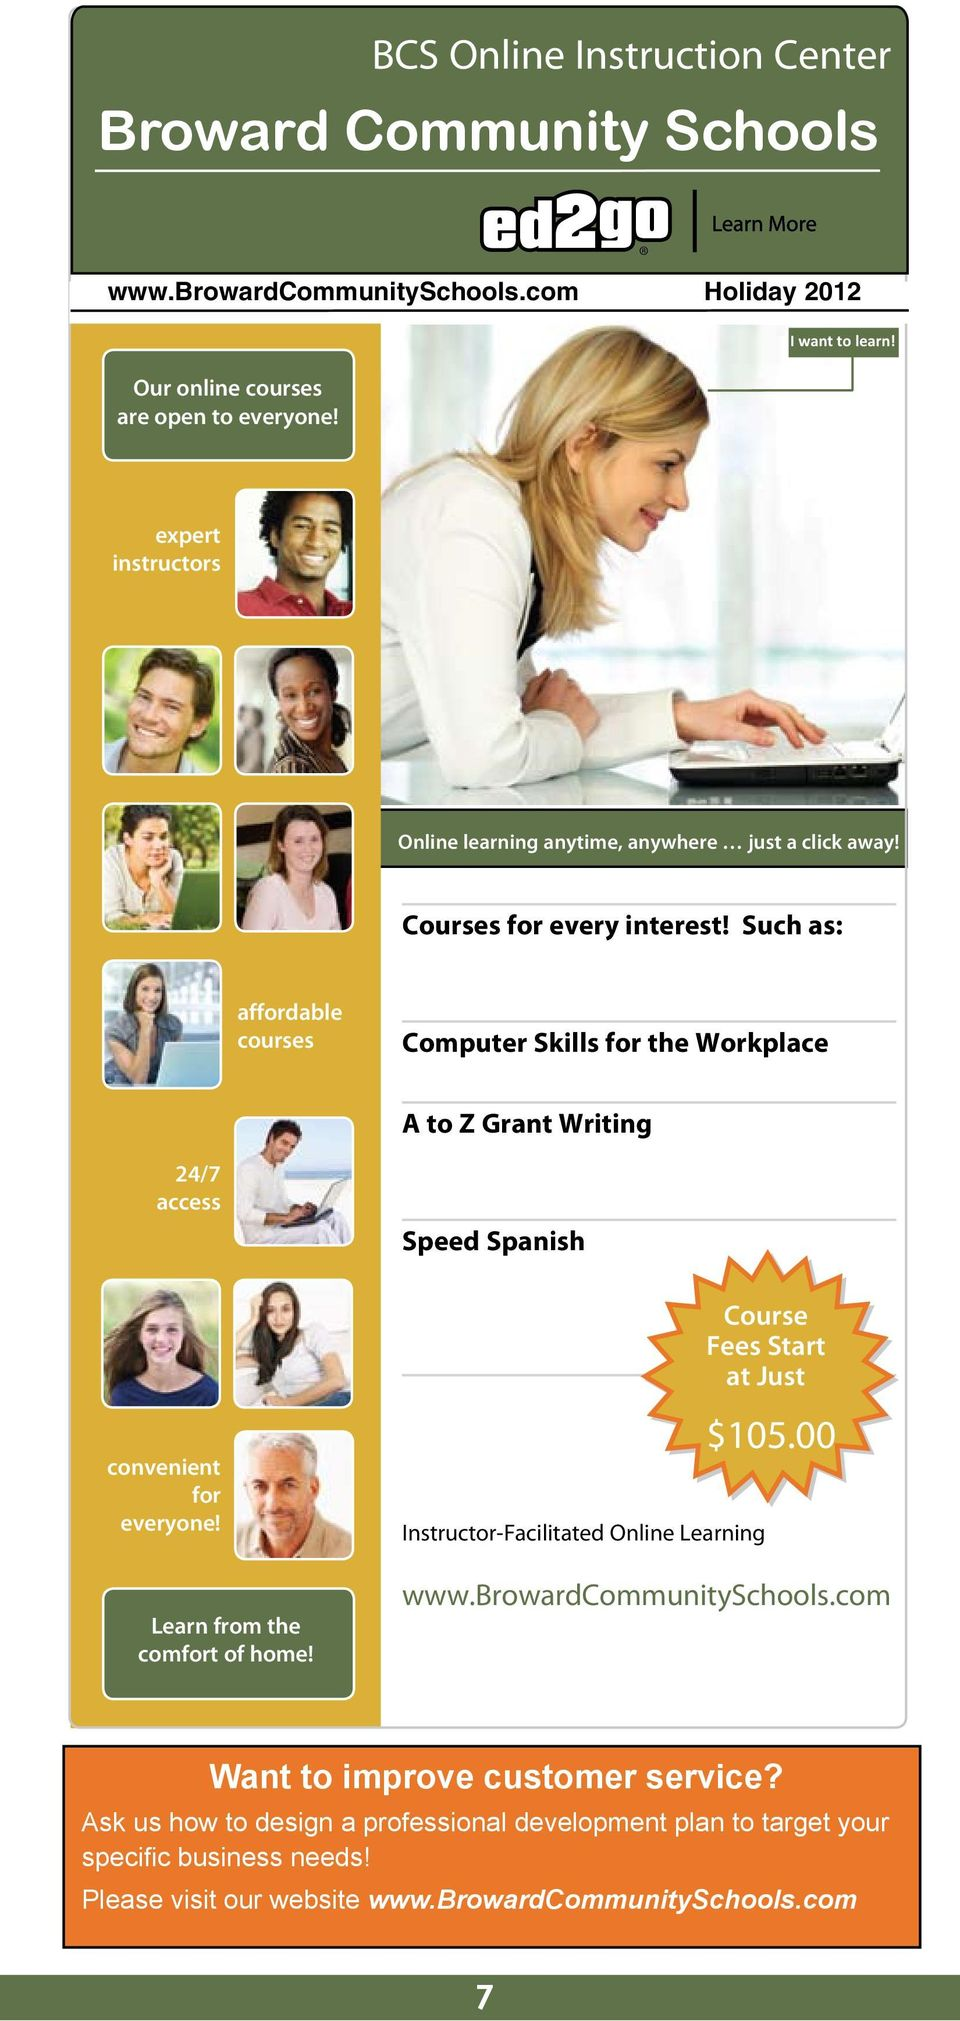 Such as: affordable courses Computer Skills for the Workplace A to Z Grant Writing 24/7 access Speed Spanish convenient for everyone! Learn from the comfort of home!